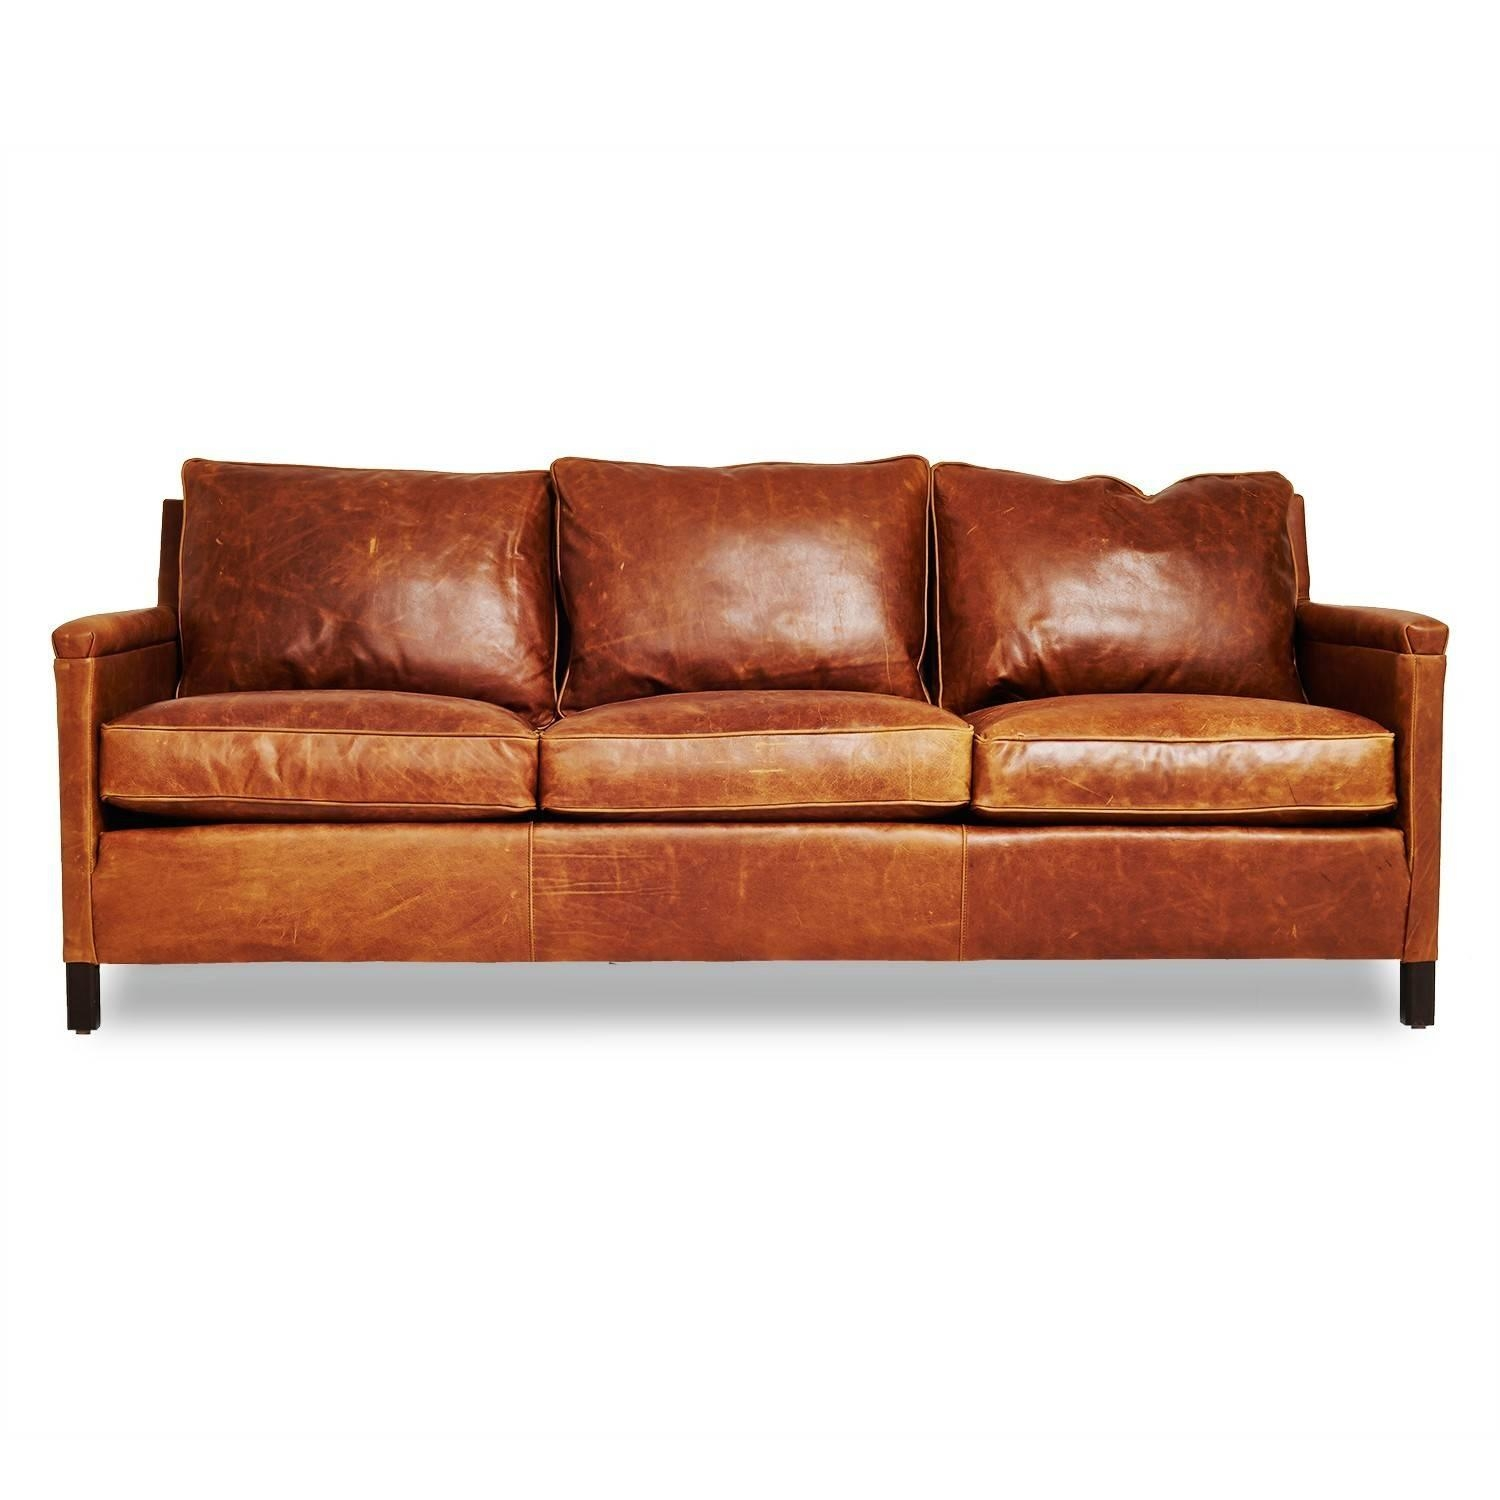 Irving Place Heston Leather Sofa – Abc Carpet & Home With Victorian Leather Sofas (Image 6 of 20)